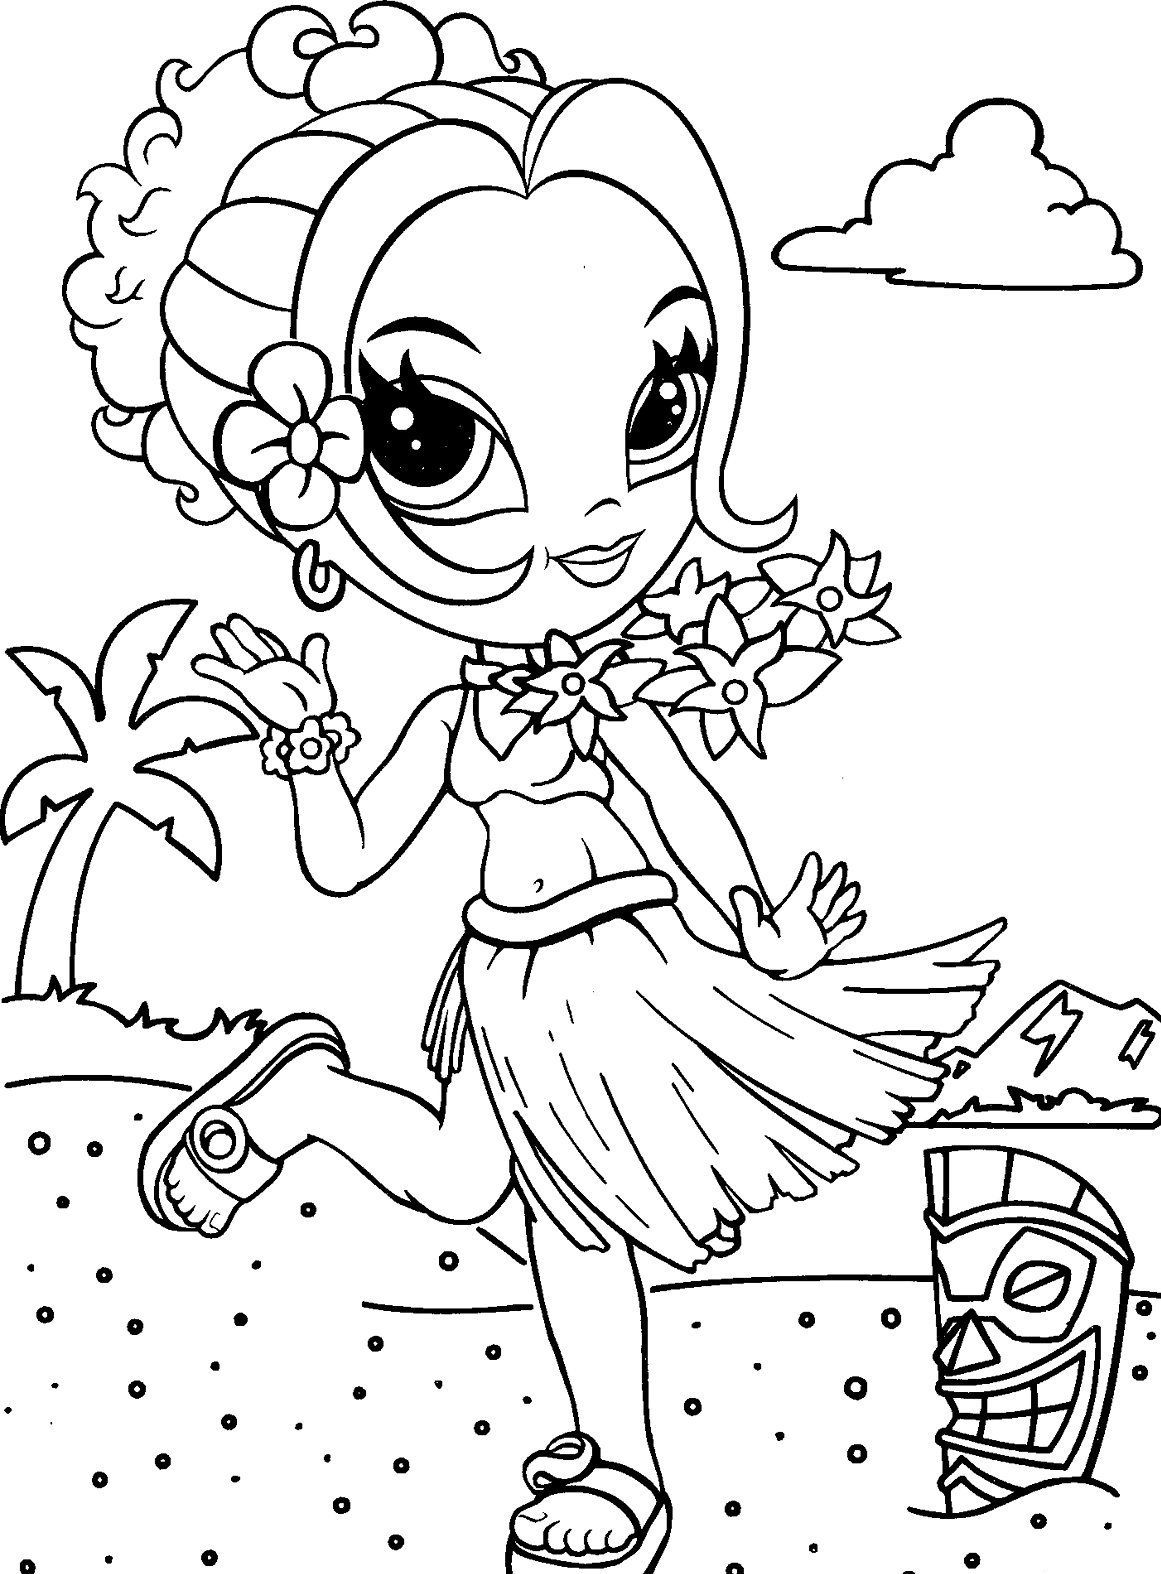 Printable Lisa Frank Coloring Pages